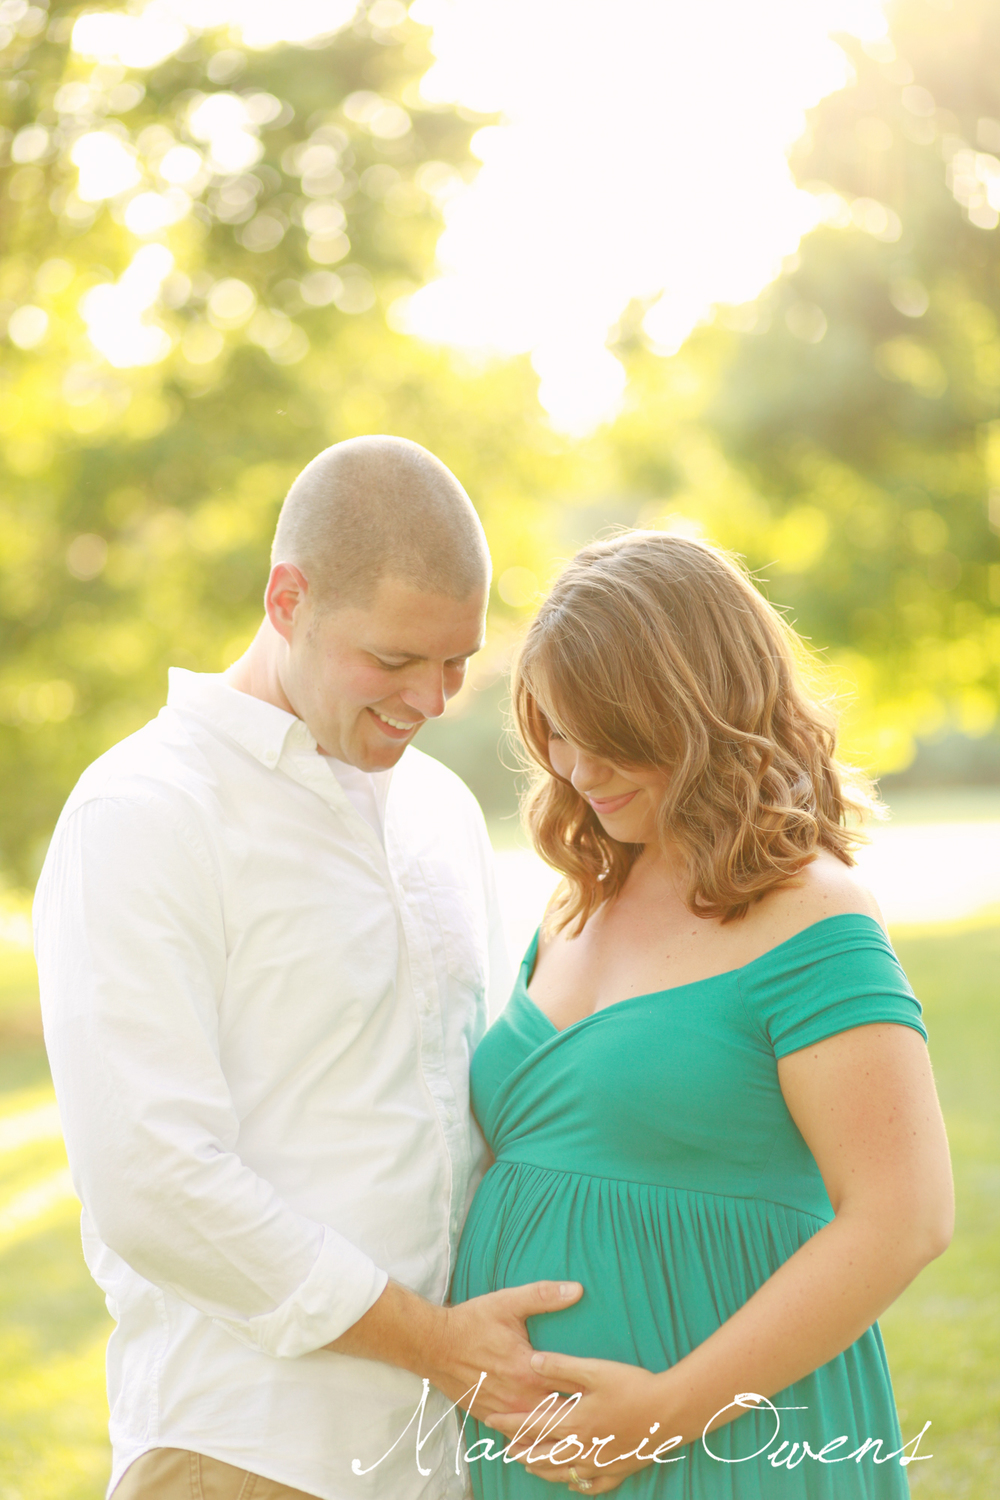 Fine Art Maternity Photographer | Mallorie Owens